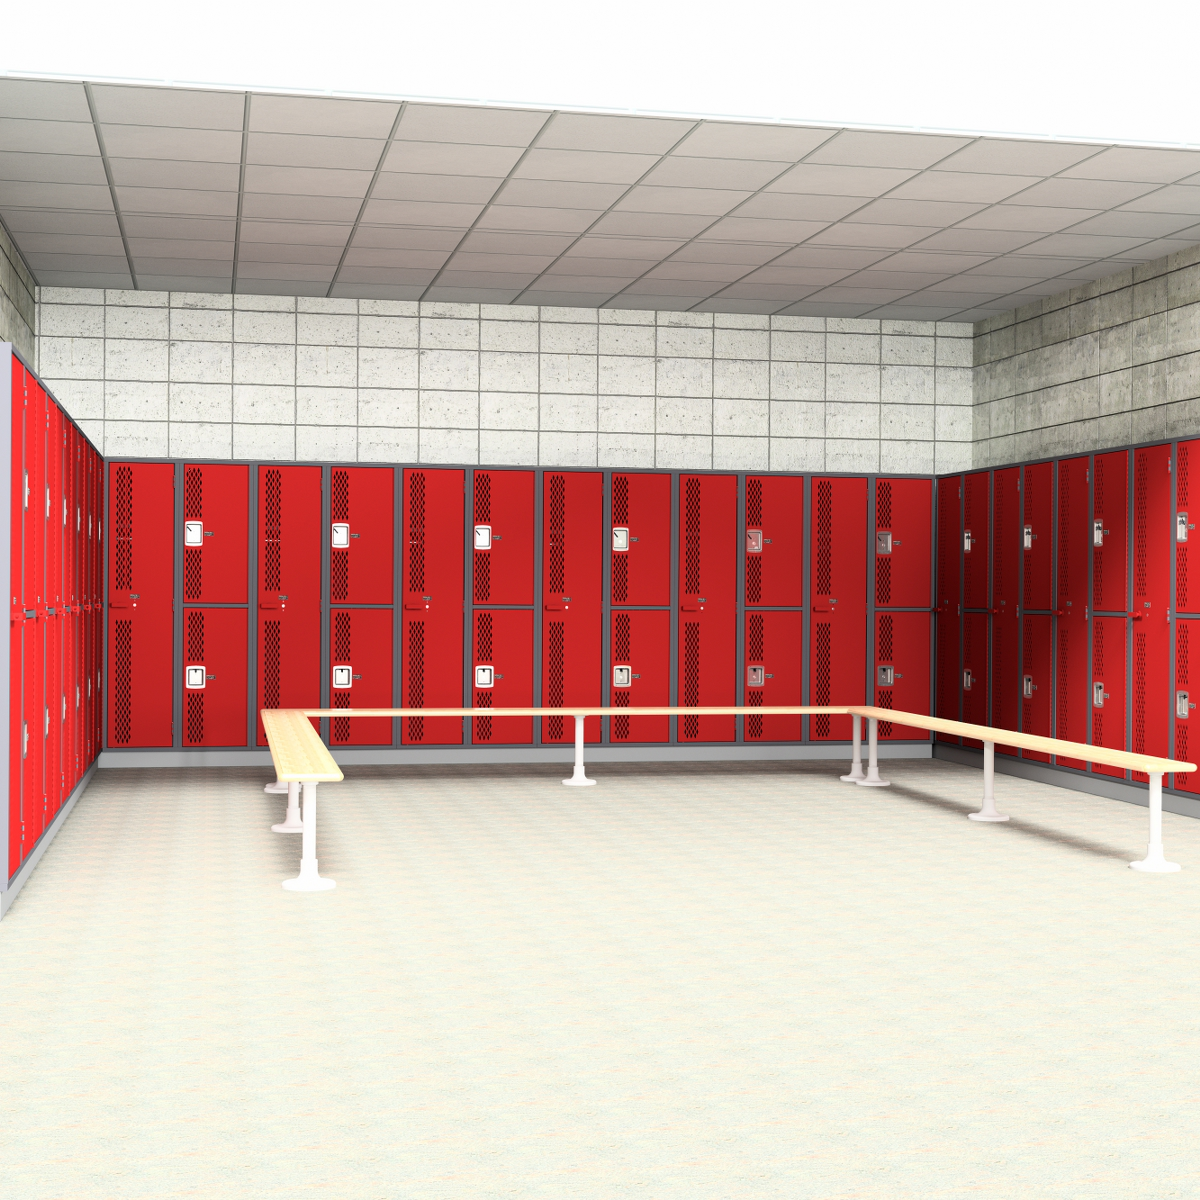 3 Locker Runs_1200x1200